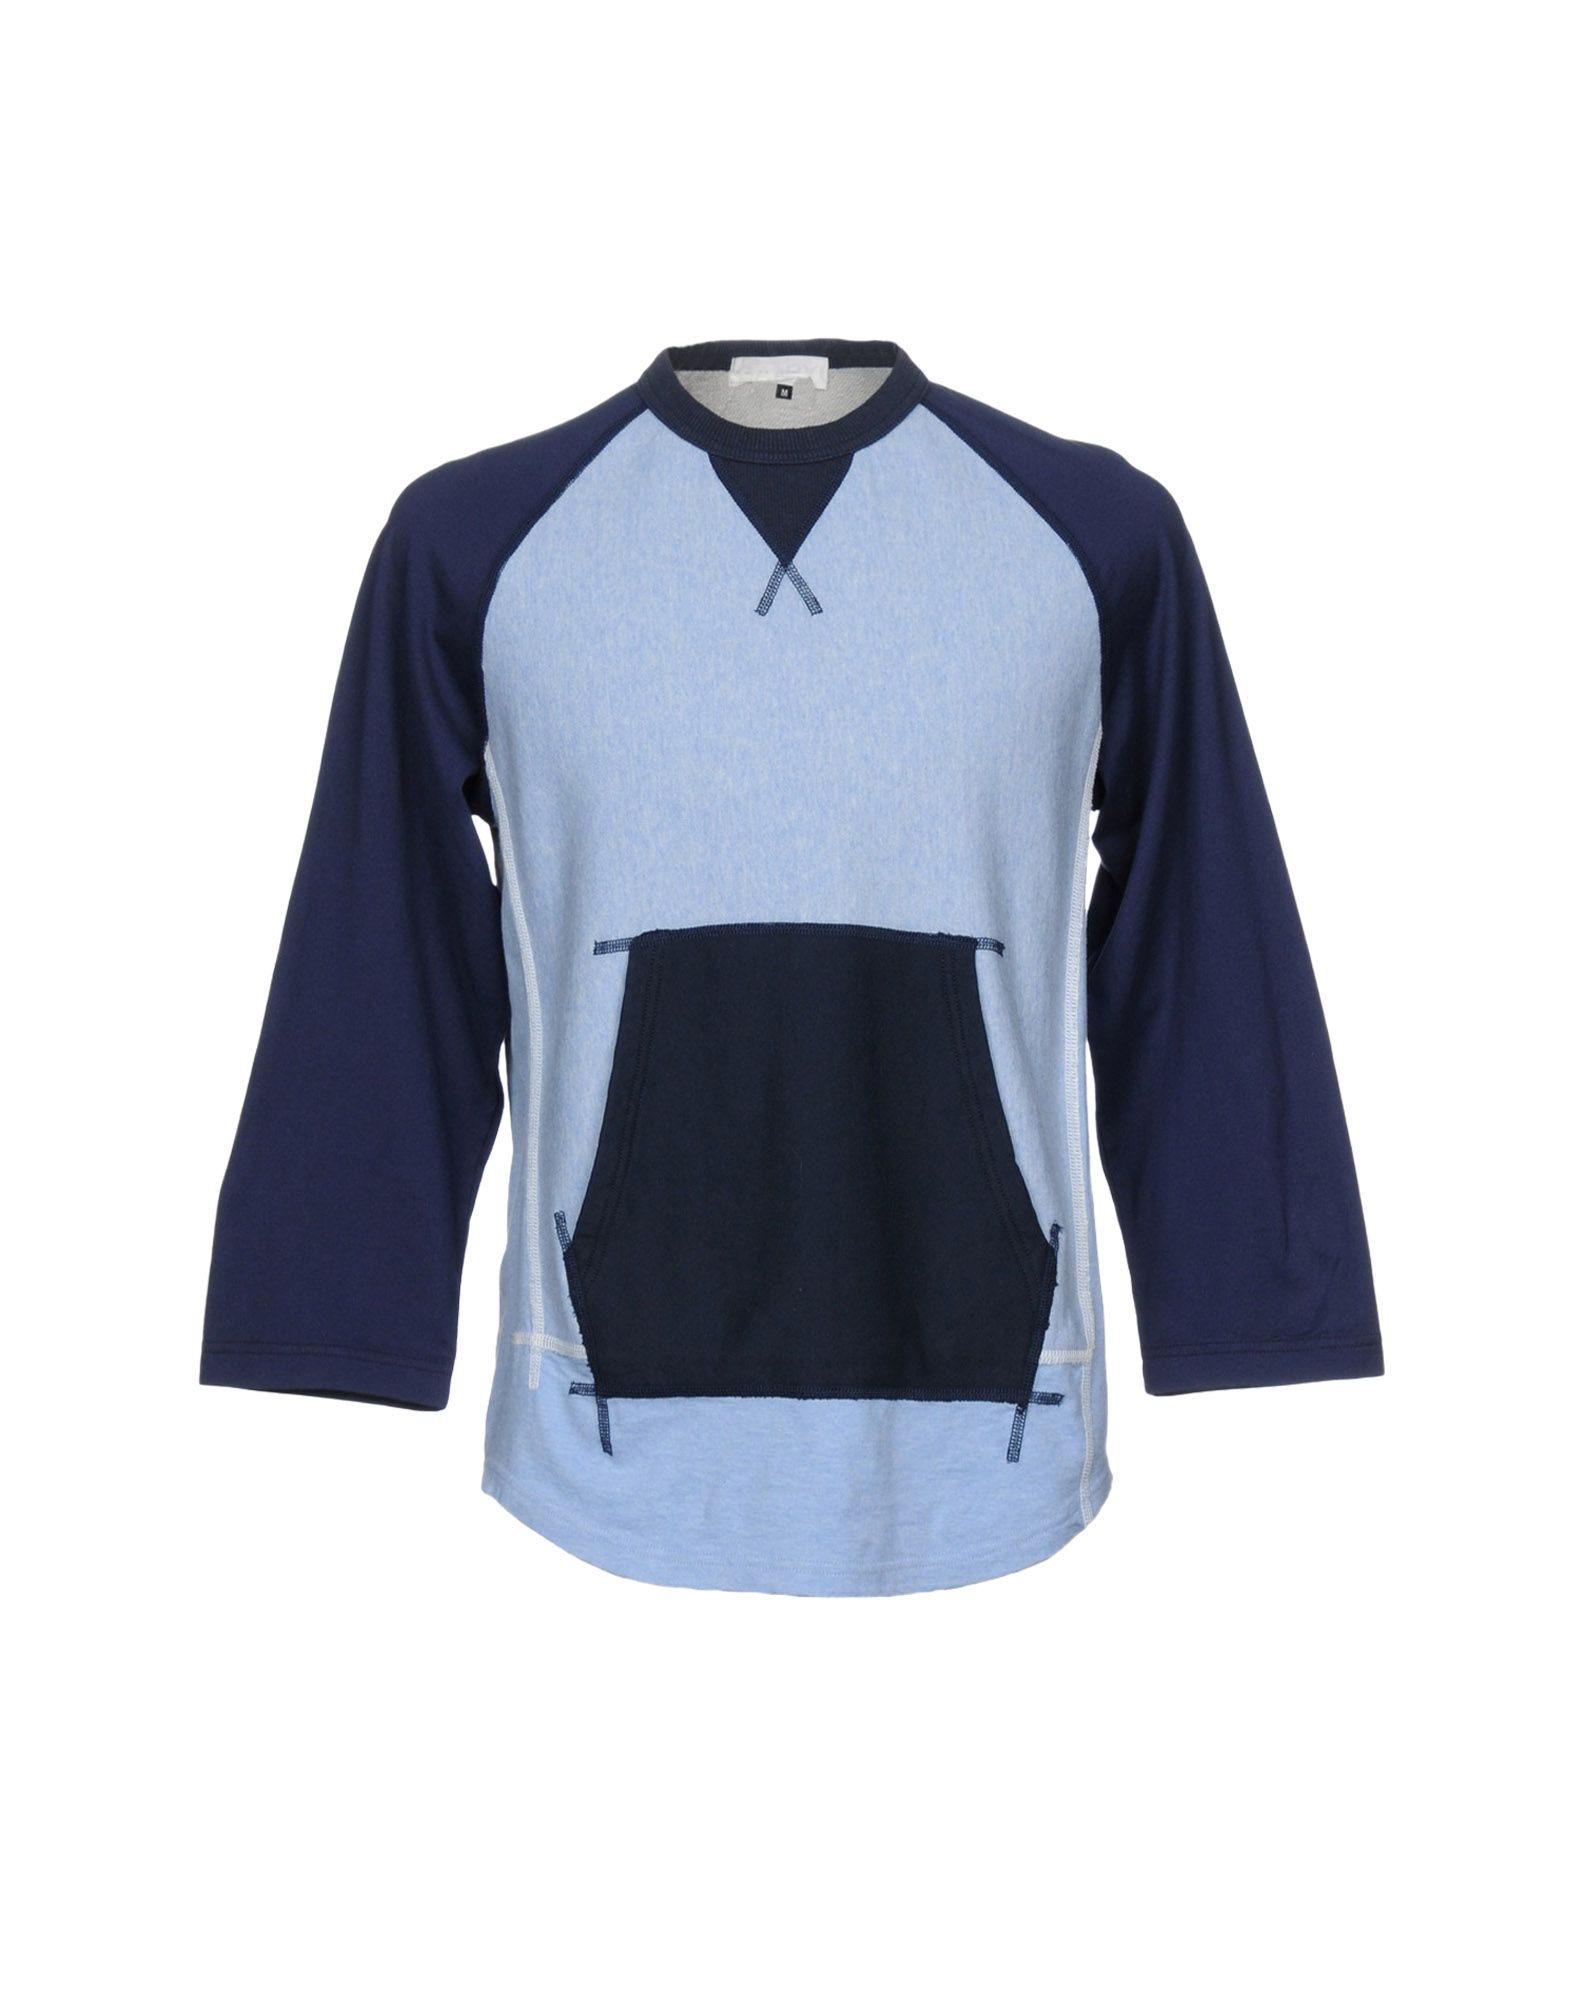 GANRYU Sweatshirt in Sky Blue